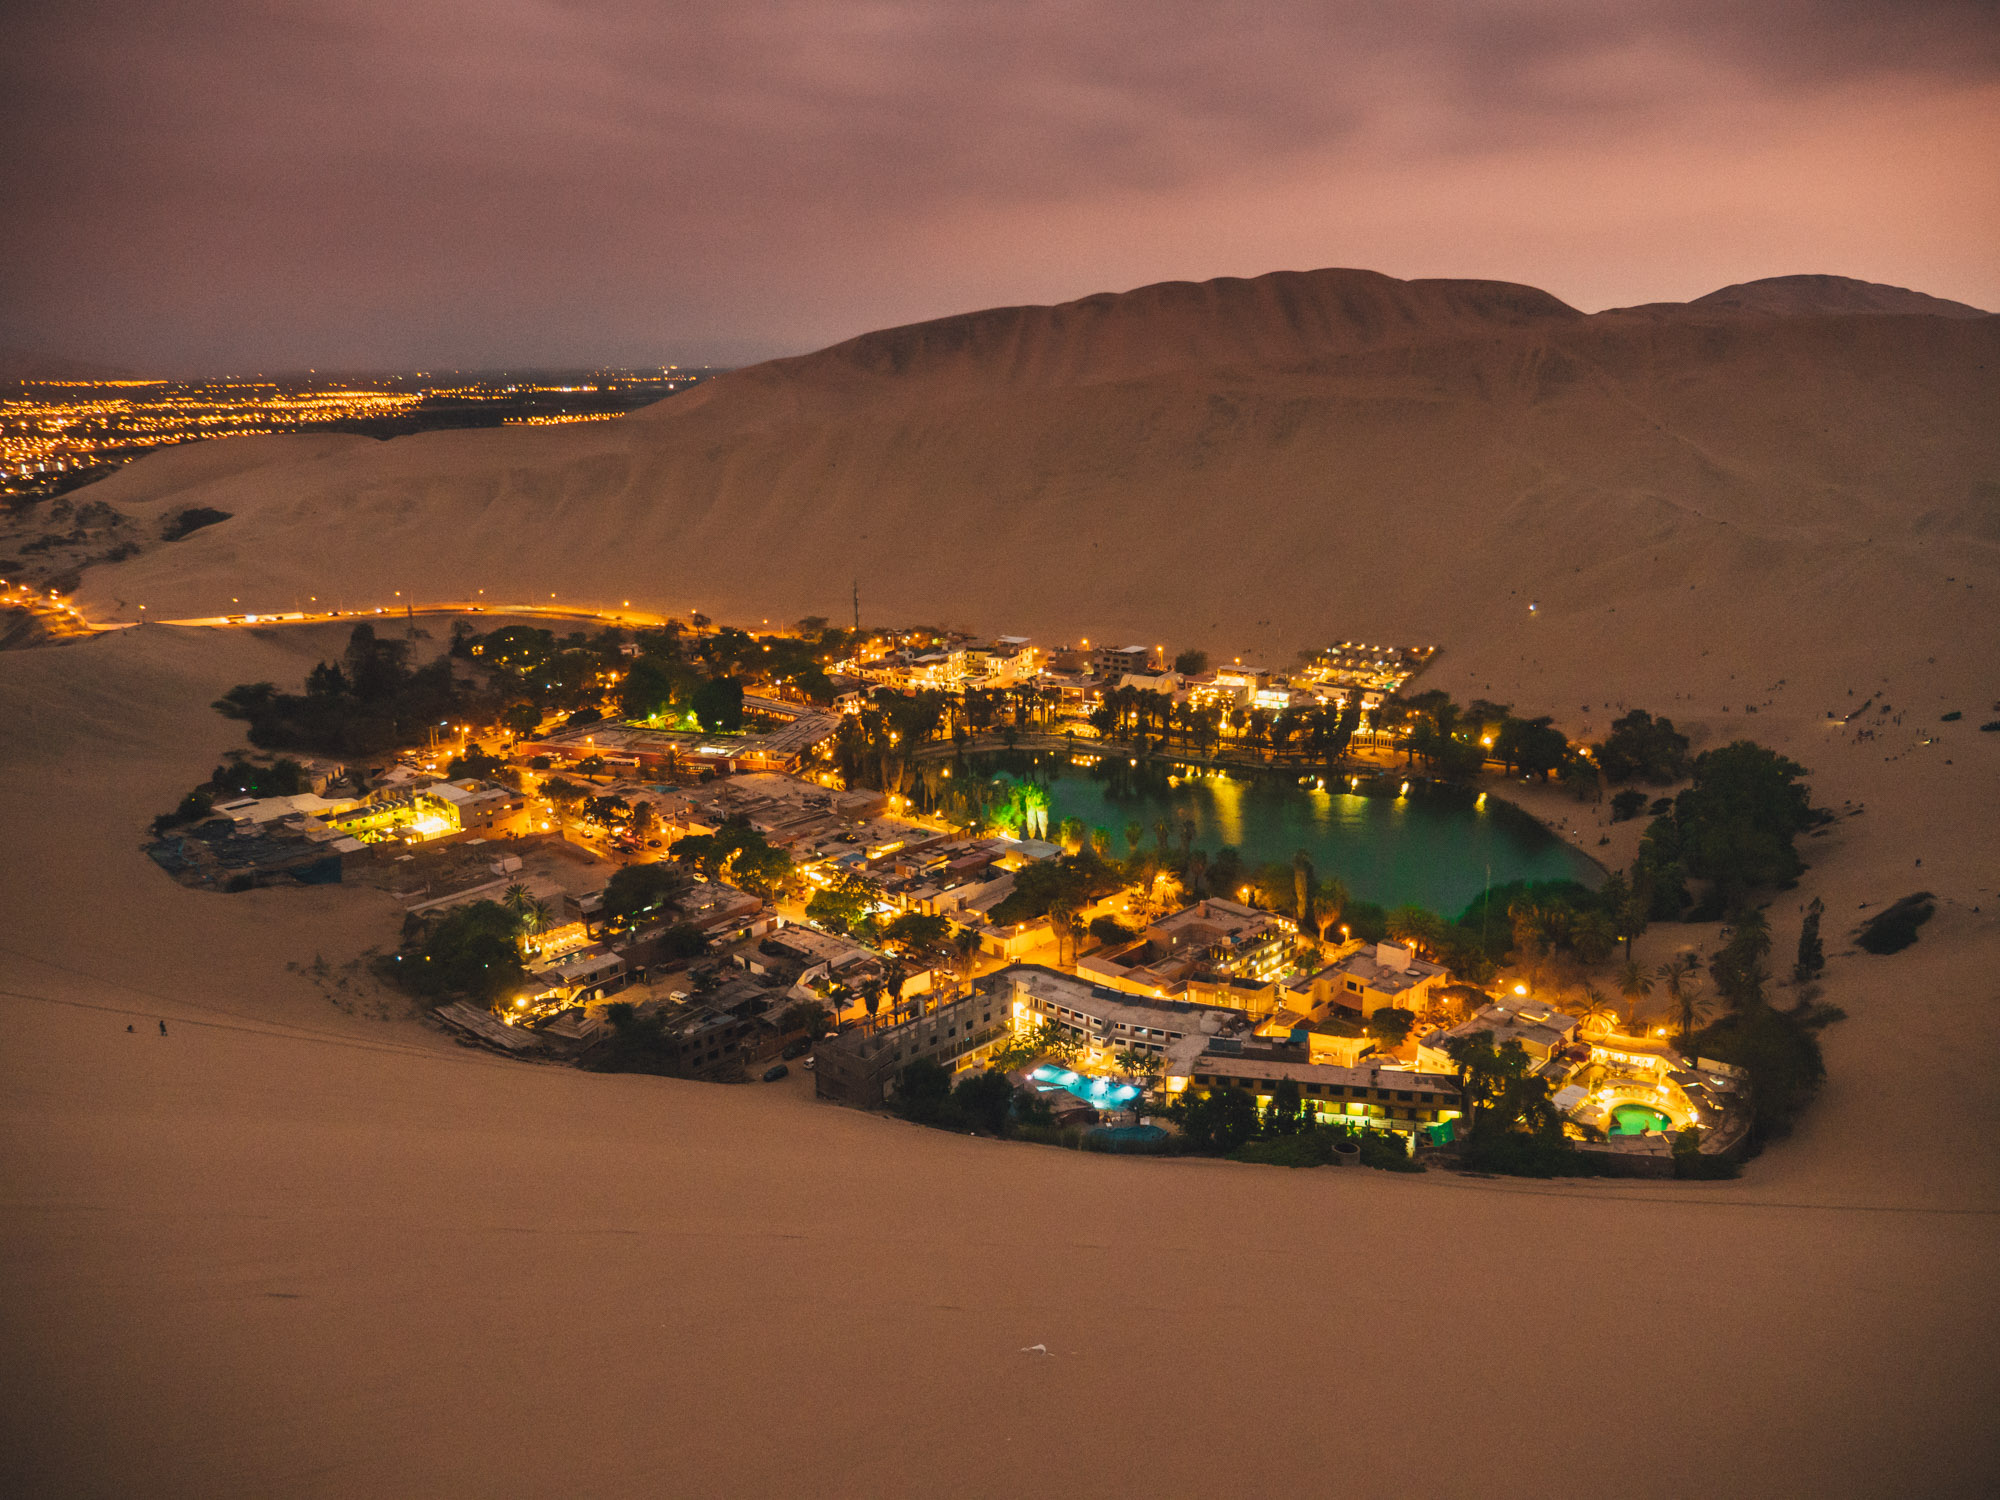 The oasis of Huacachina is little gem in the sand dune desert about 7 km from Ica, Peru. It has about 100 inhabitants, not counting the large amounts of tourists visiting this place. You can sign up for a ride in a buggy over sand dunes and go sand boarding.